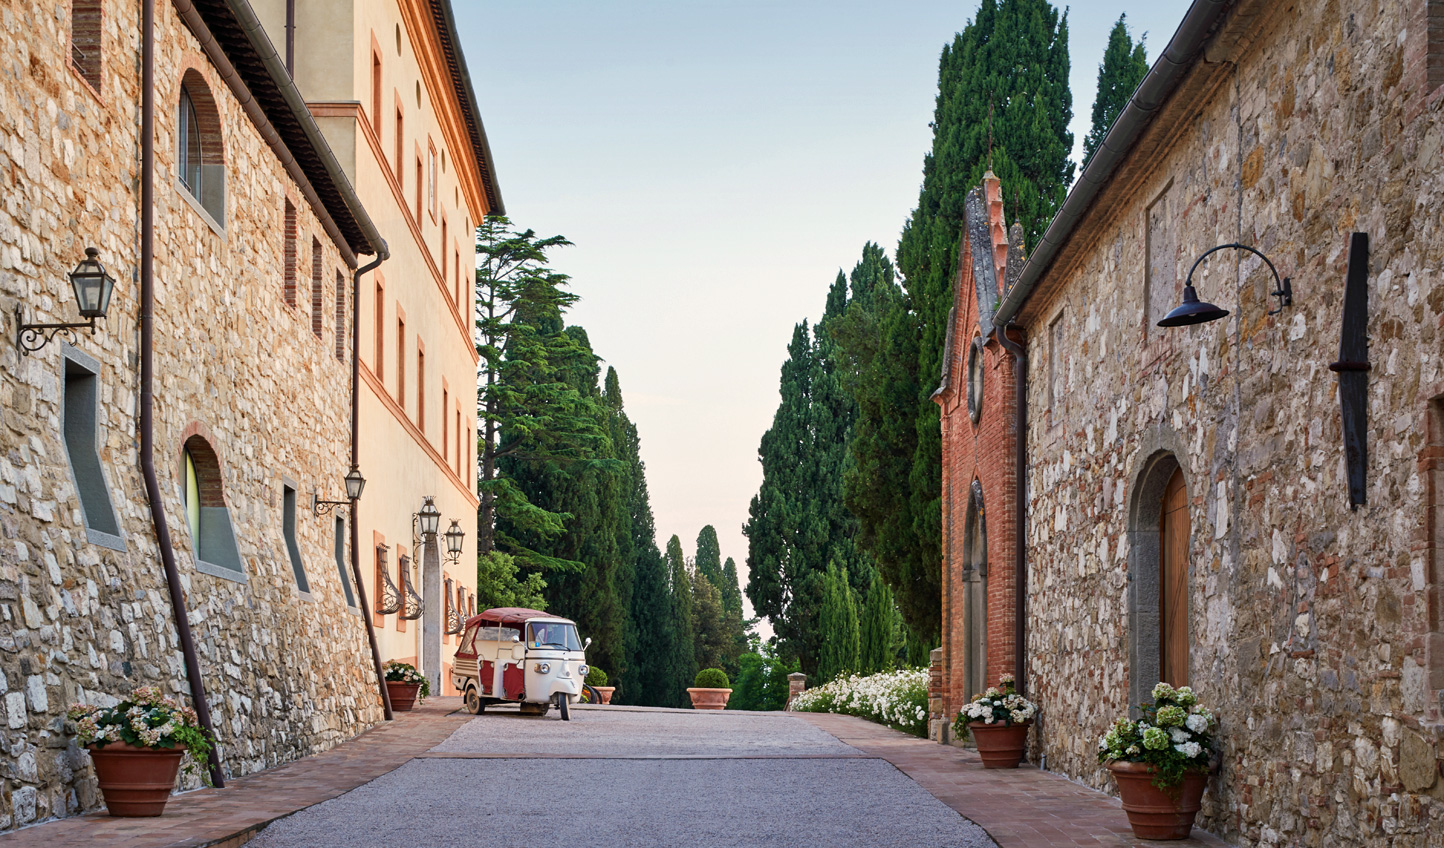 Hop in for a Tuscan adventure